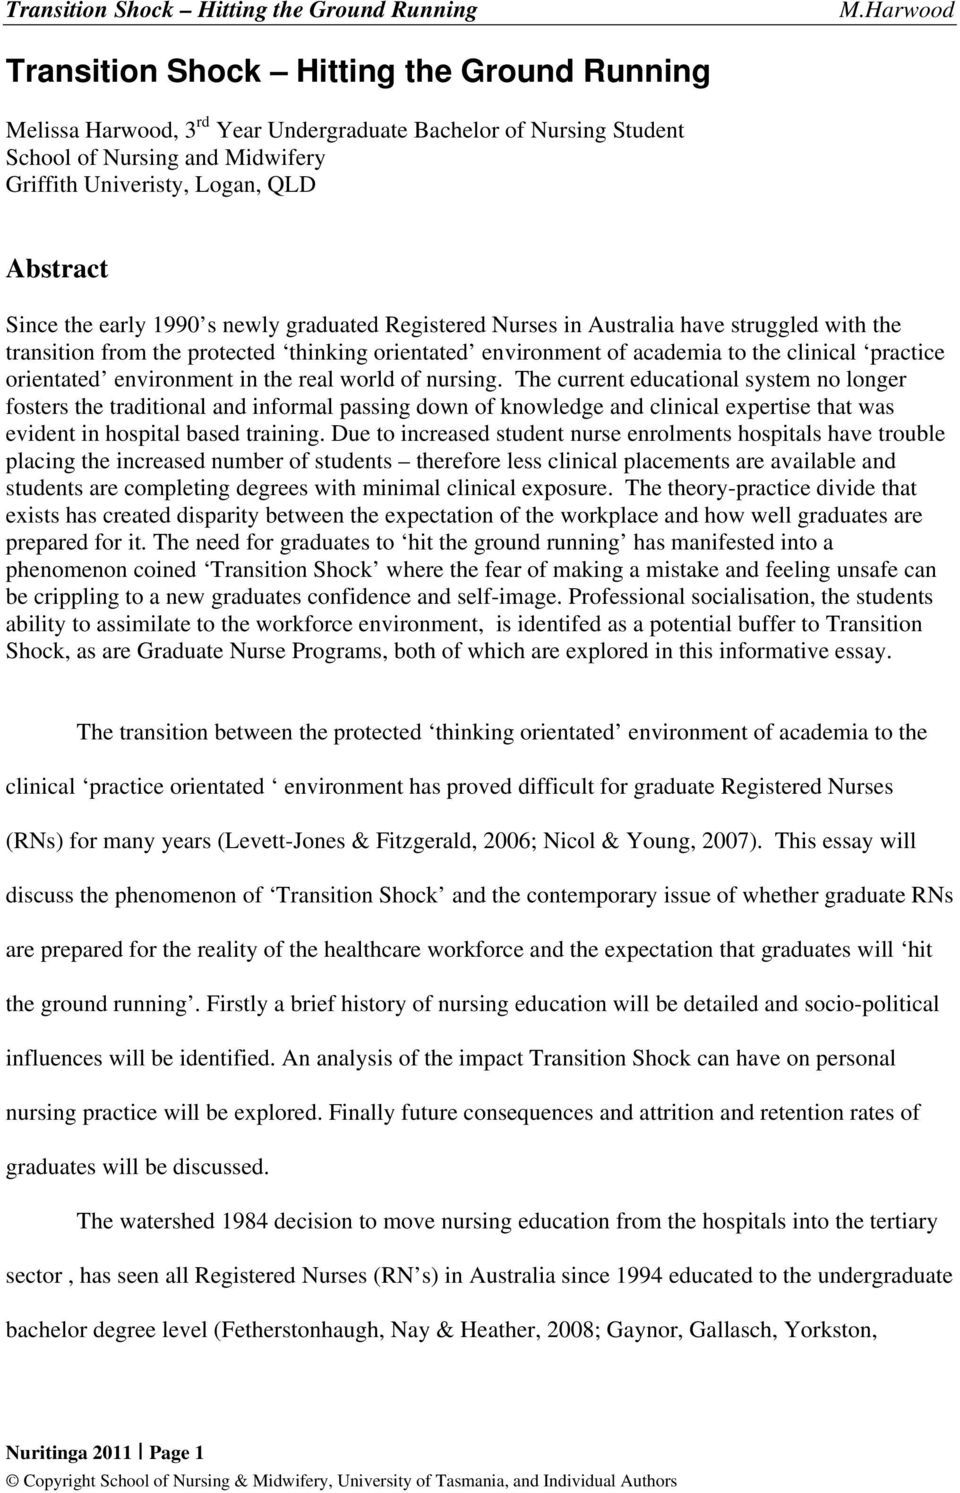 Obesity Essay Thesis Environment In The Real World Of Nursing Essay On Health Care also Psychology As A Science Essay Nuritinga Electronic Journal Of Nursing  Pdf English Example Essay